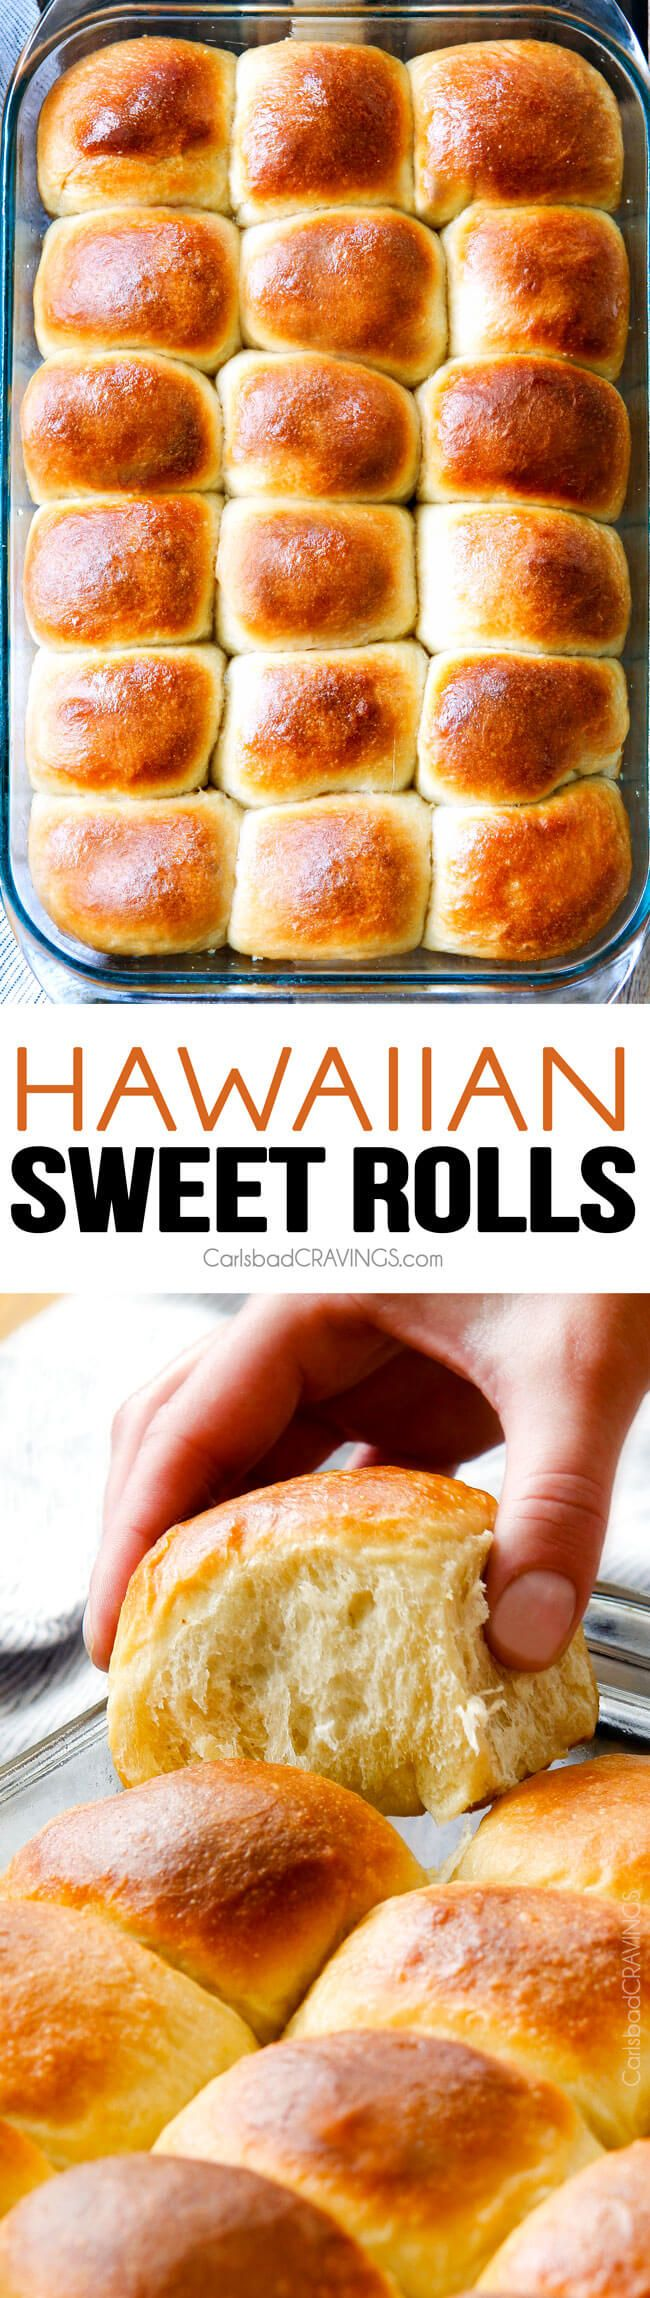 sweet buttery Hawaiian Sweet Rolls are super soft and fluffy infused with pineapple juice and slathered in butter! My family LOVES these!